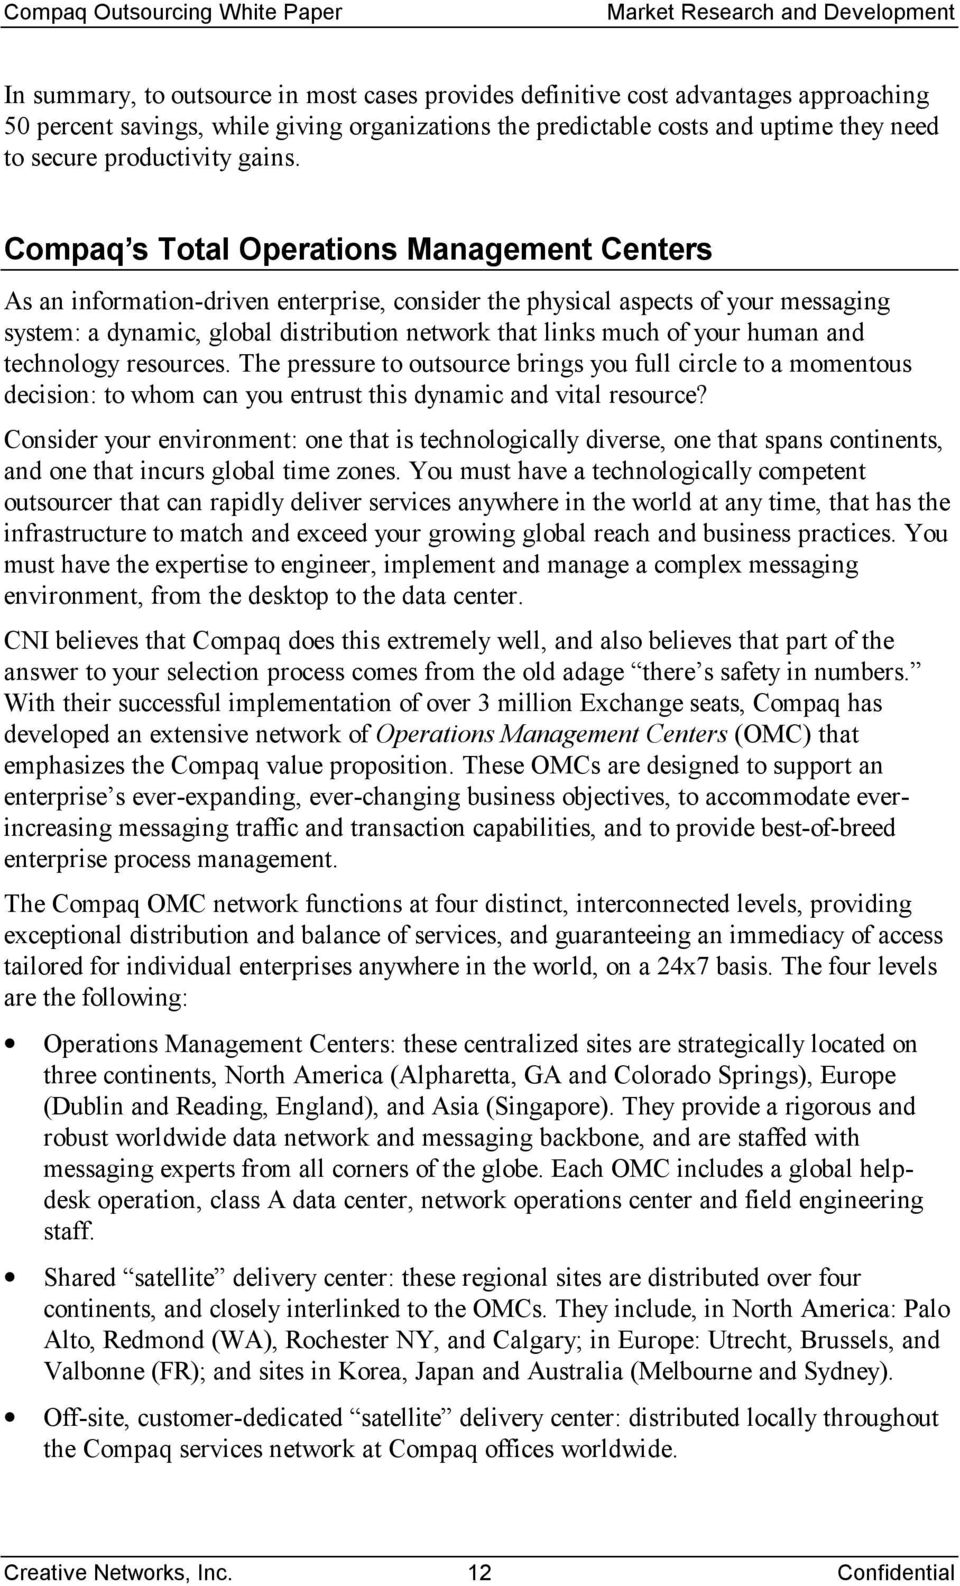 Compaq s Total Operations Management Centers As an information-driven enterprise, consider the physical aspects of your messaging system: a dynamic, global distribution network that links much of